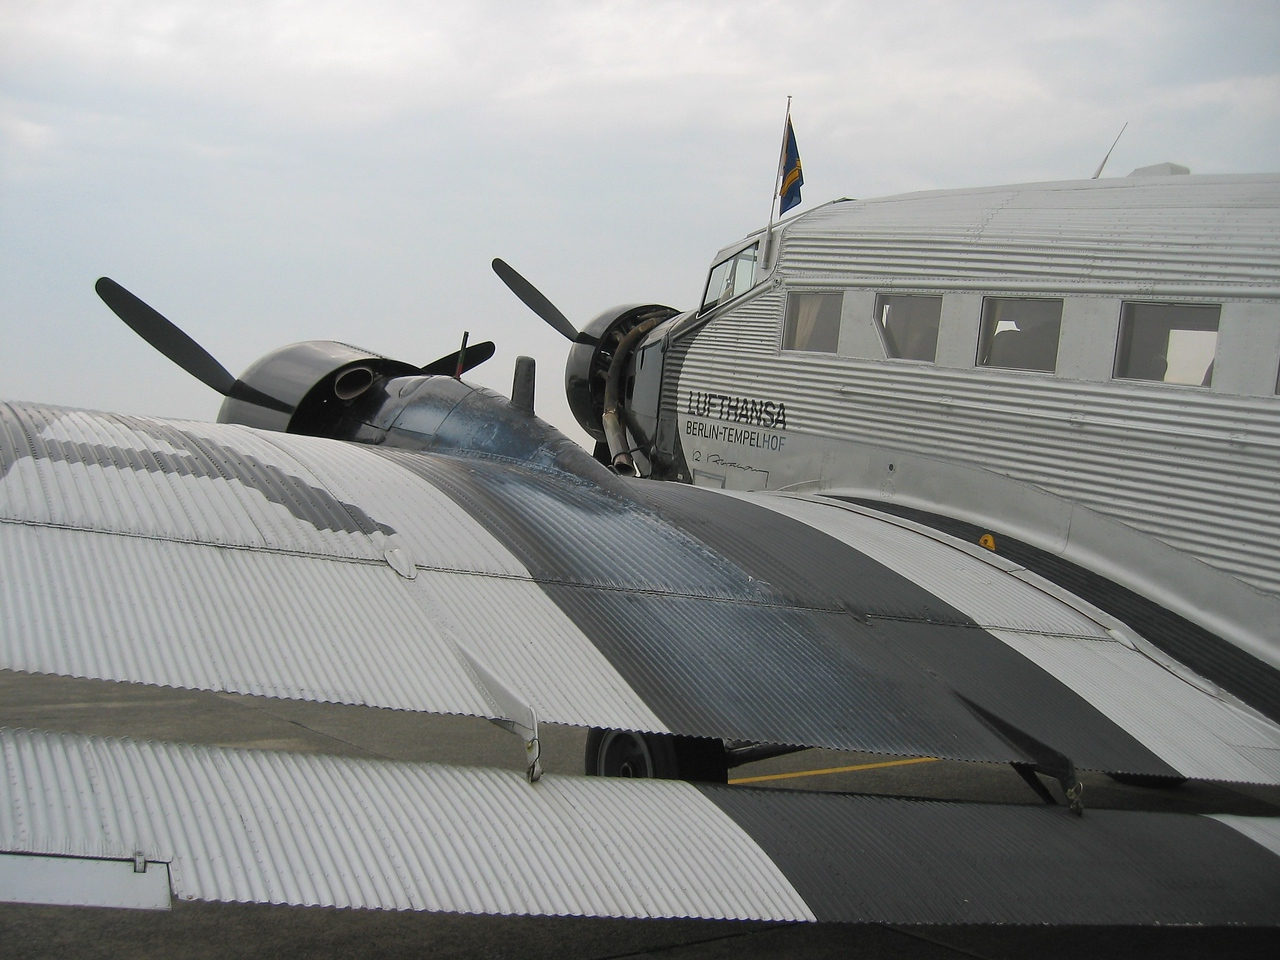 The Ju-52, aka D-AQUI. Built in 1936 and completely overhauled in 1986. This took 16 months. Now performing fun flights throughout whole Europe.